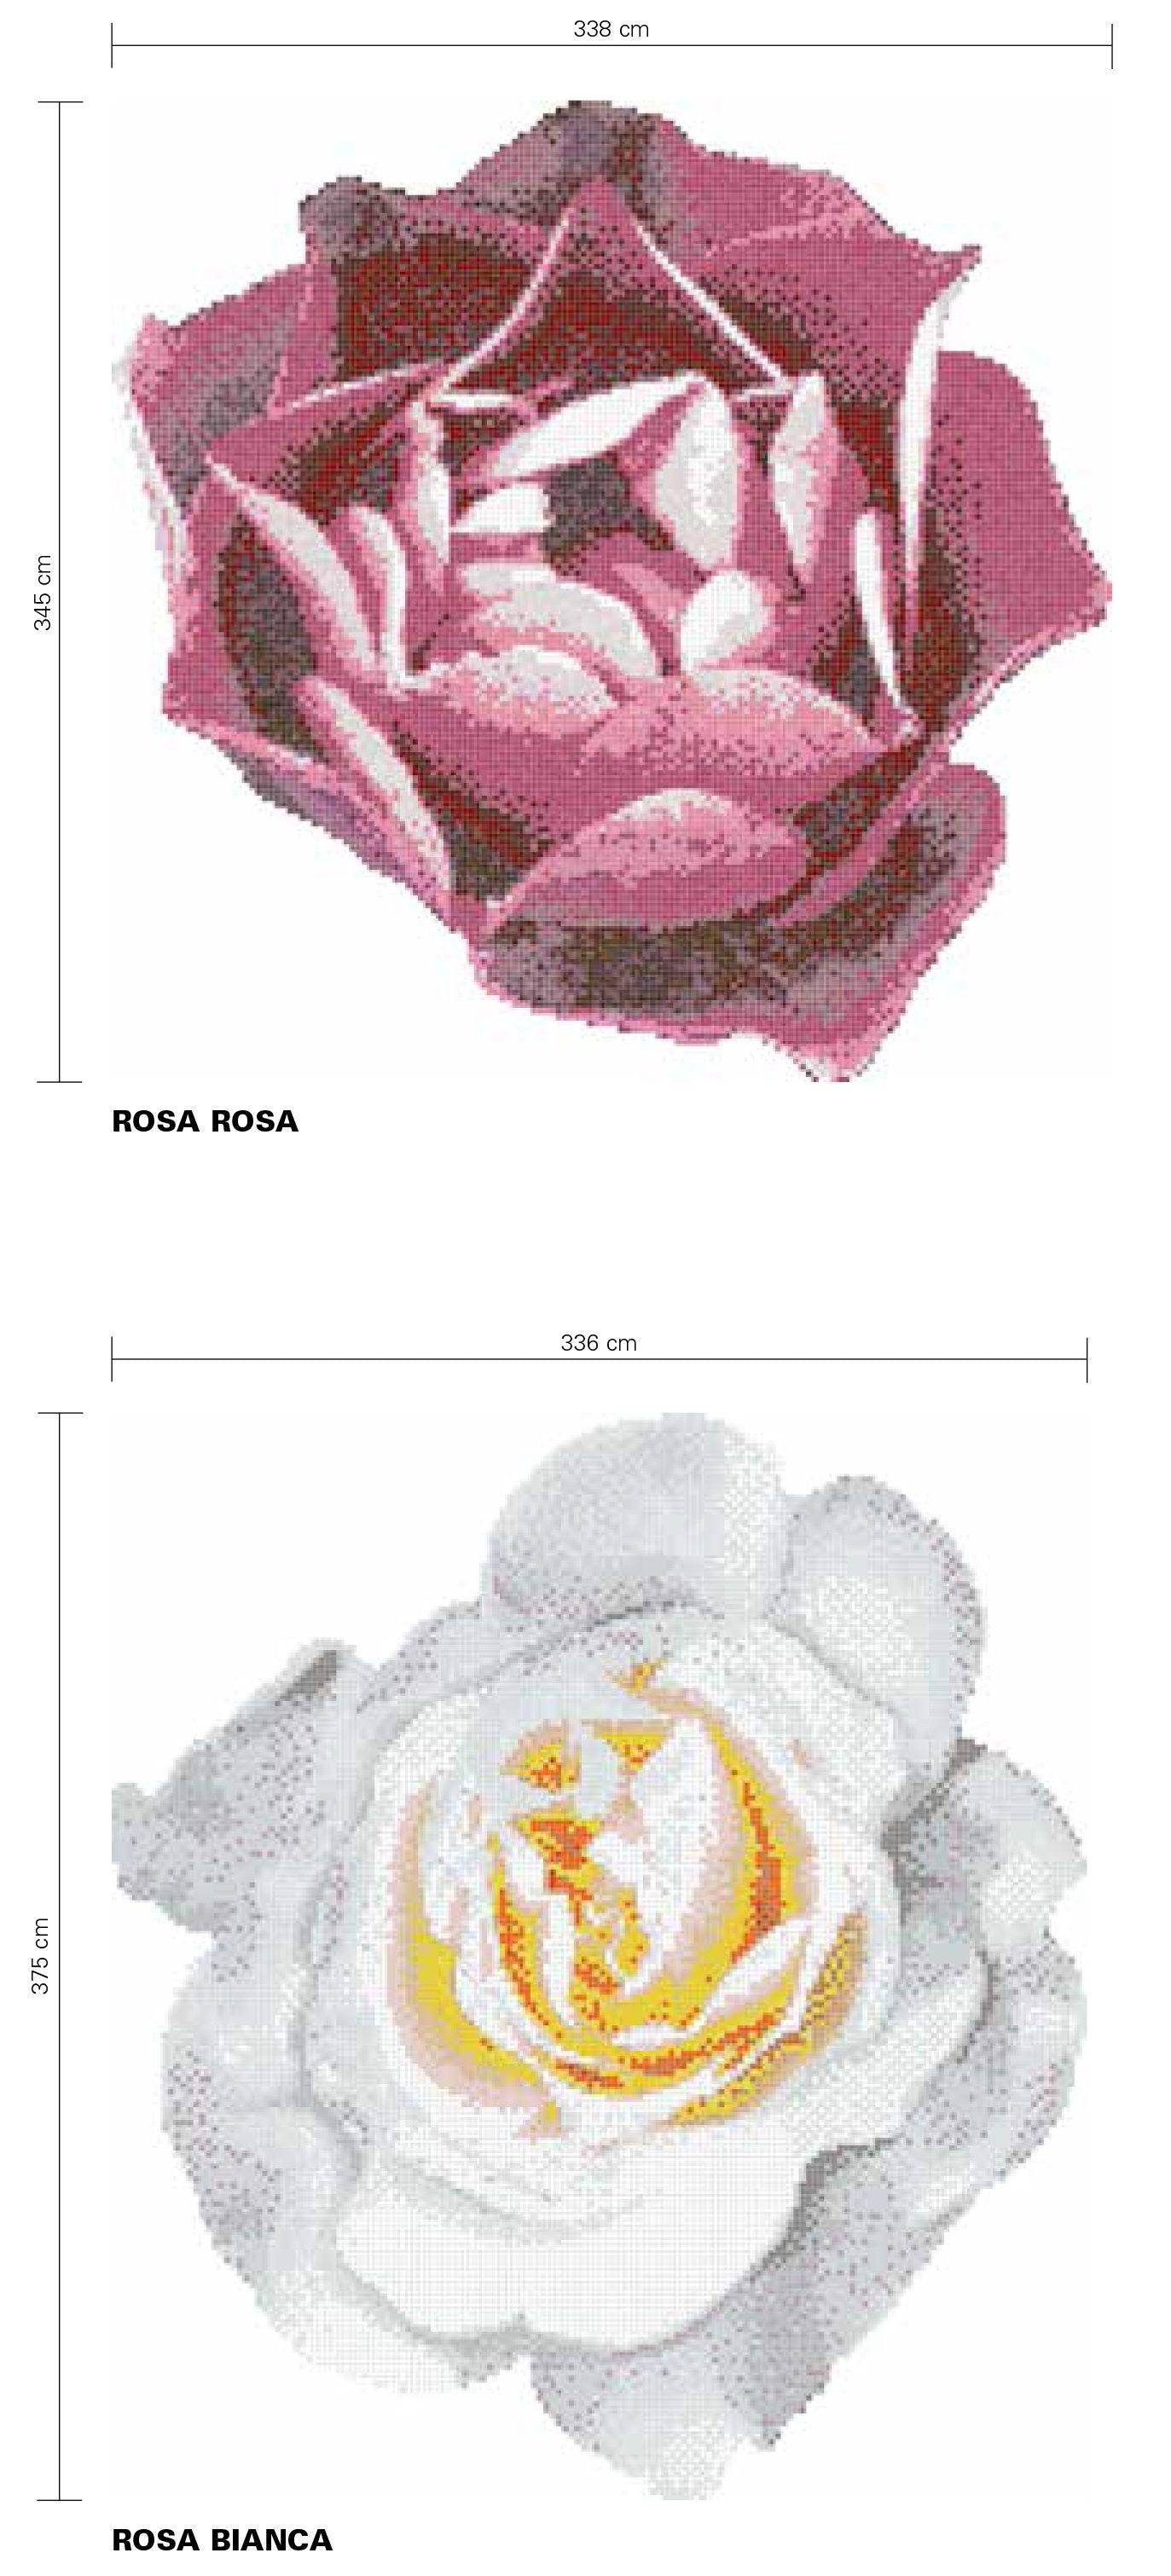 Bisazza Pools Rosa Bianca